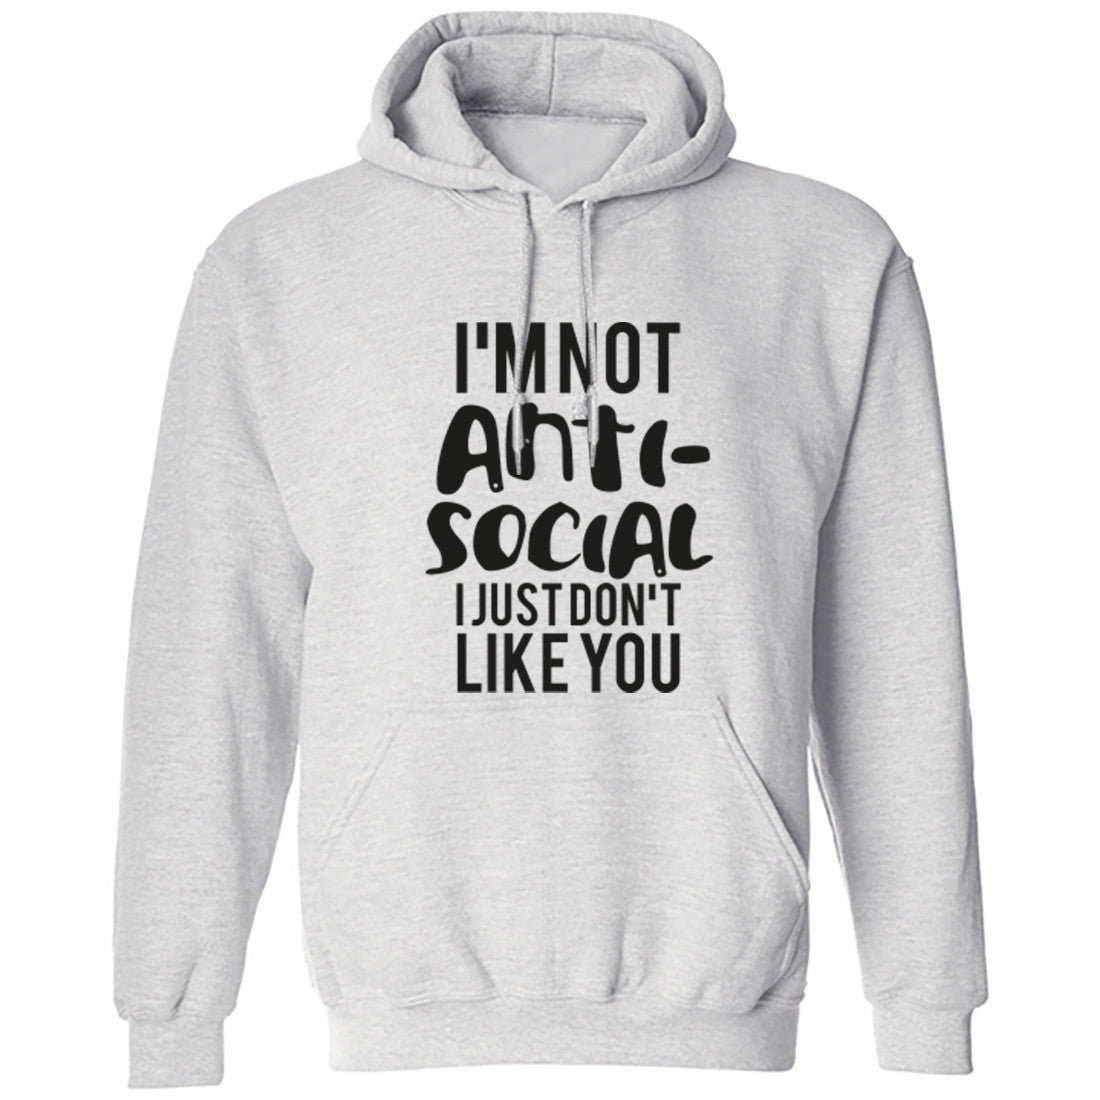 I'm Not Anti-Social I Just Don't Like You Unisex Hoodie K0099 - Illustrated Identity Ltd.